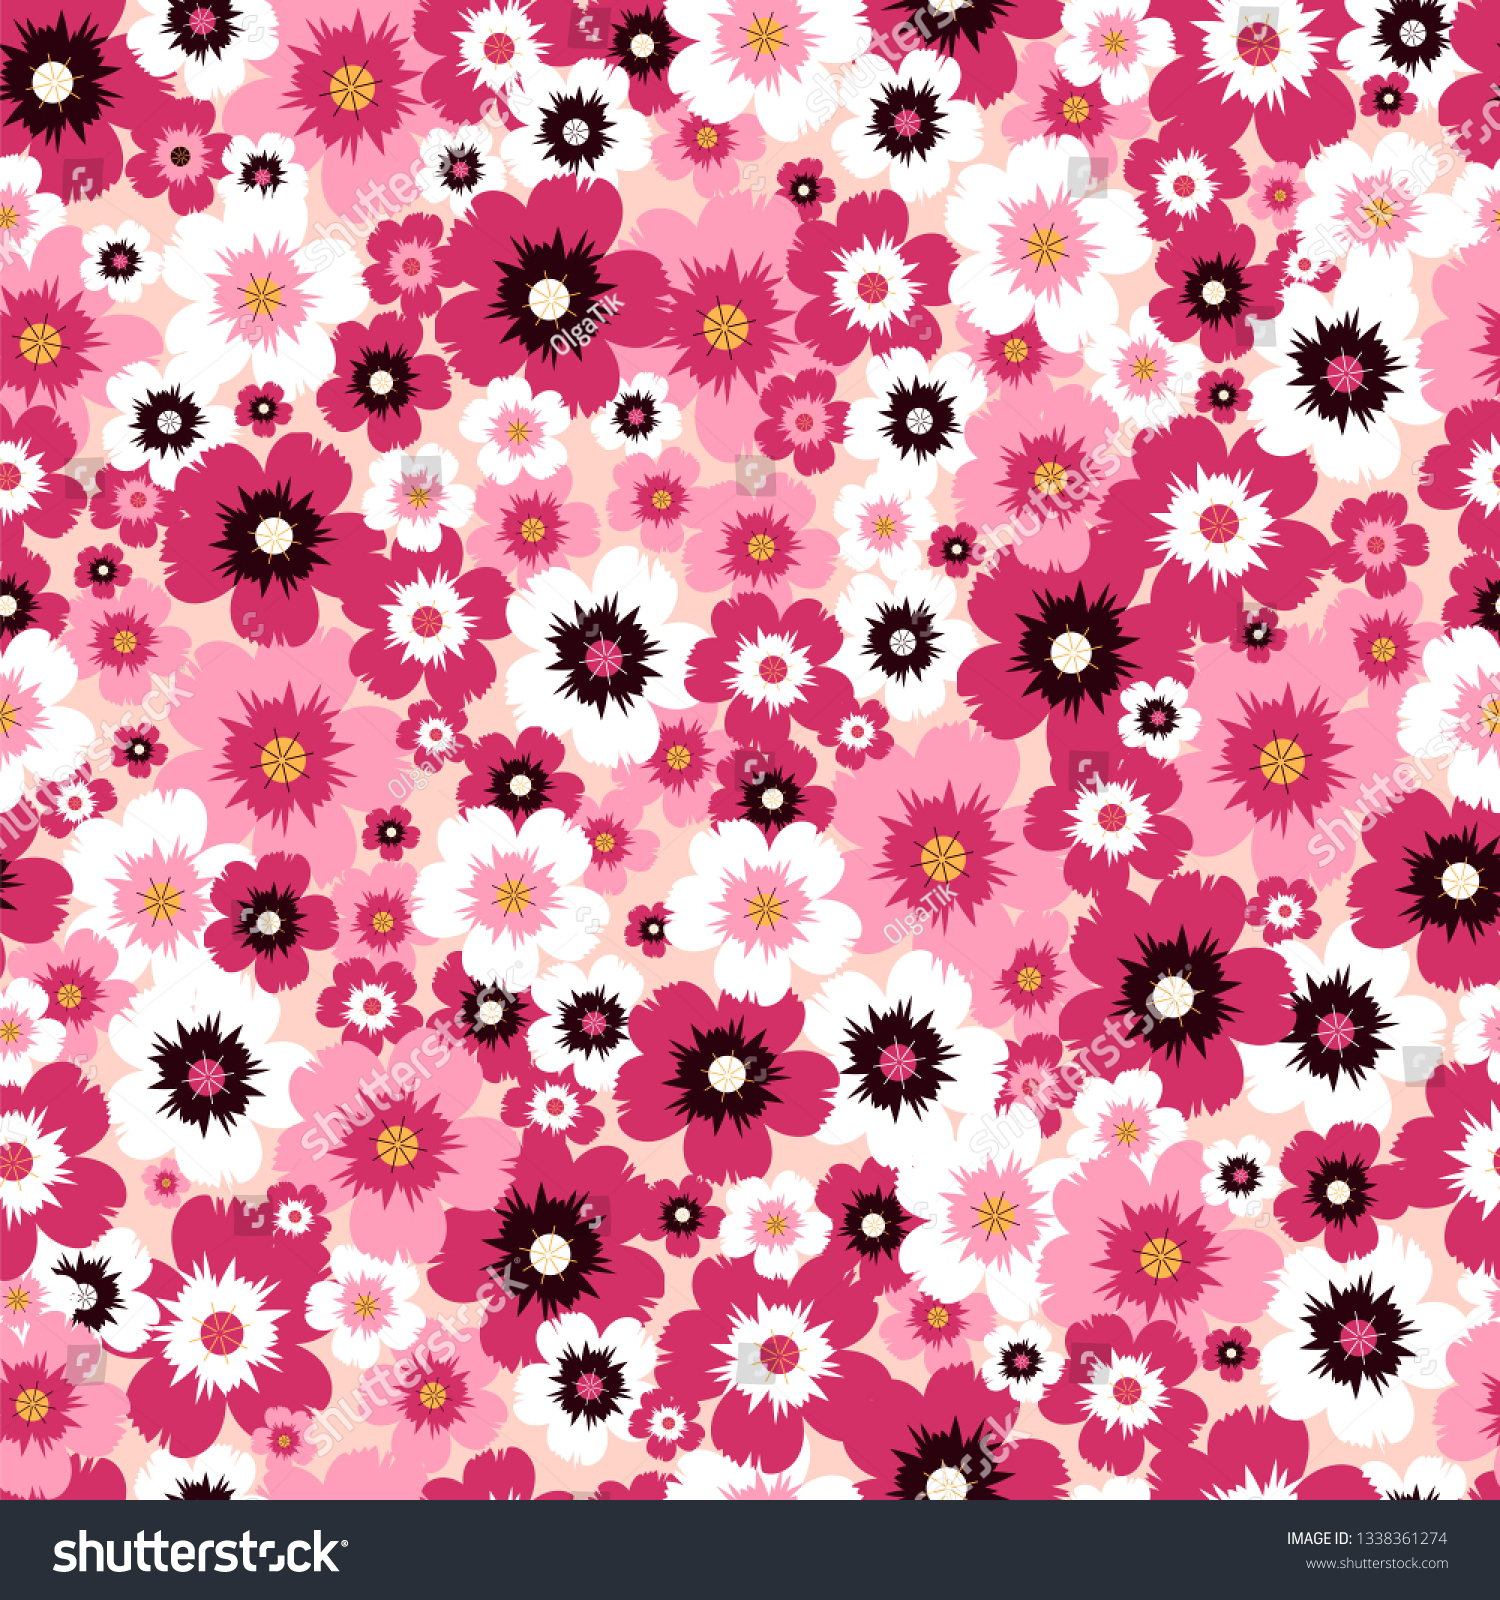 Seamless Background Pink Flowers Flower Wallpaper Stock Vector